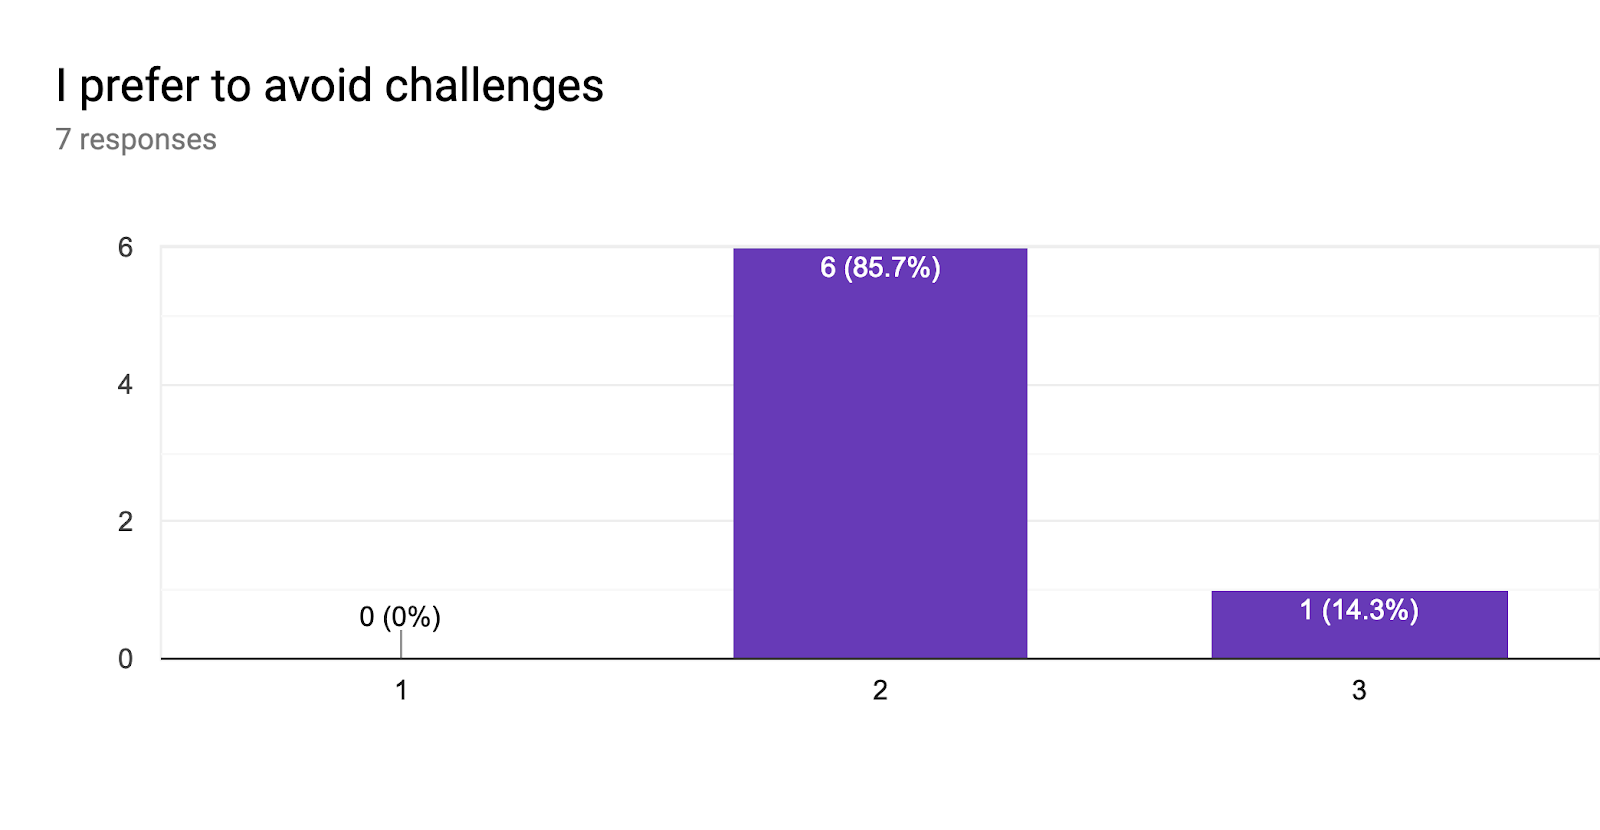 Forms response chart. Question title: I prefer to avoid challenges. Number of responses: 7 responses.